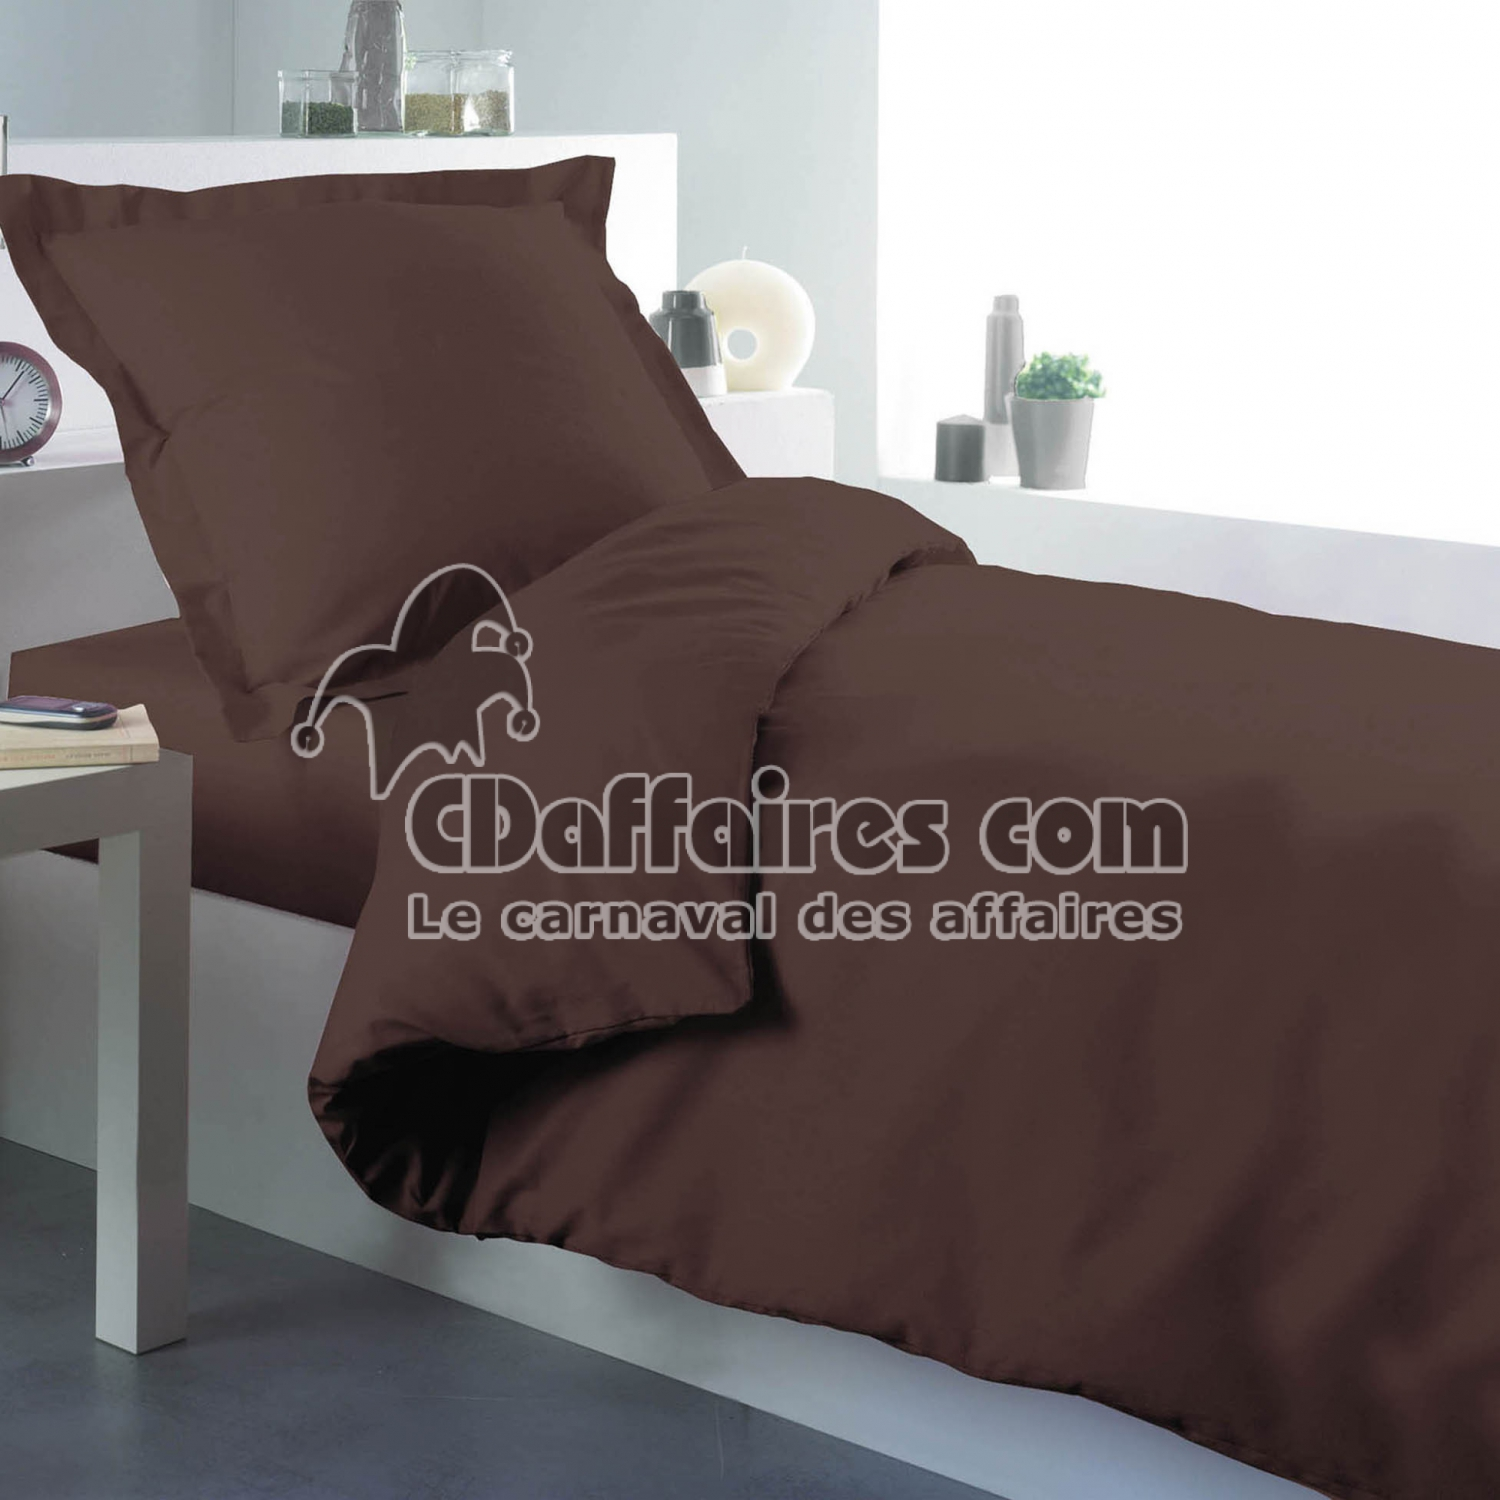 housse de couette 1 personne 140 x 200 cm uni 57 fils lina cacao cdaffaires. Black Bedroom Furniture Sets. Home Design Ideas